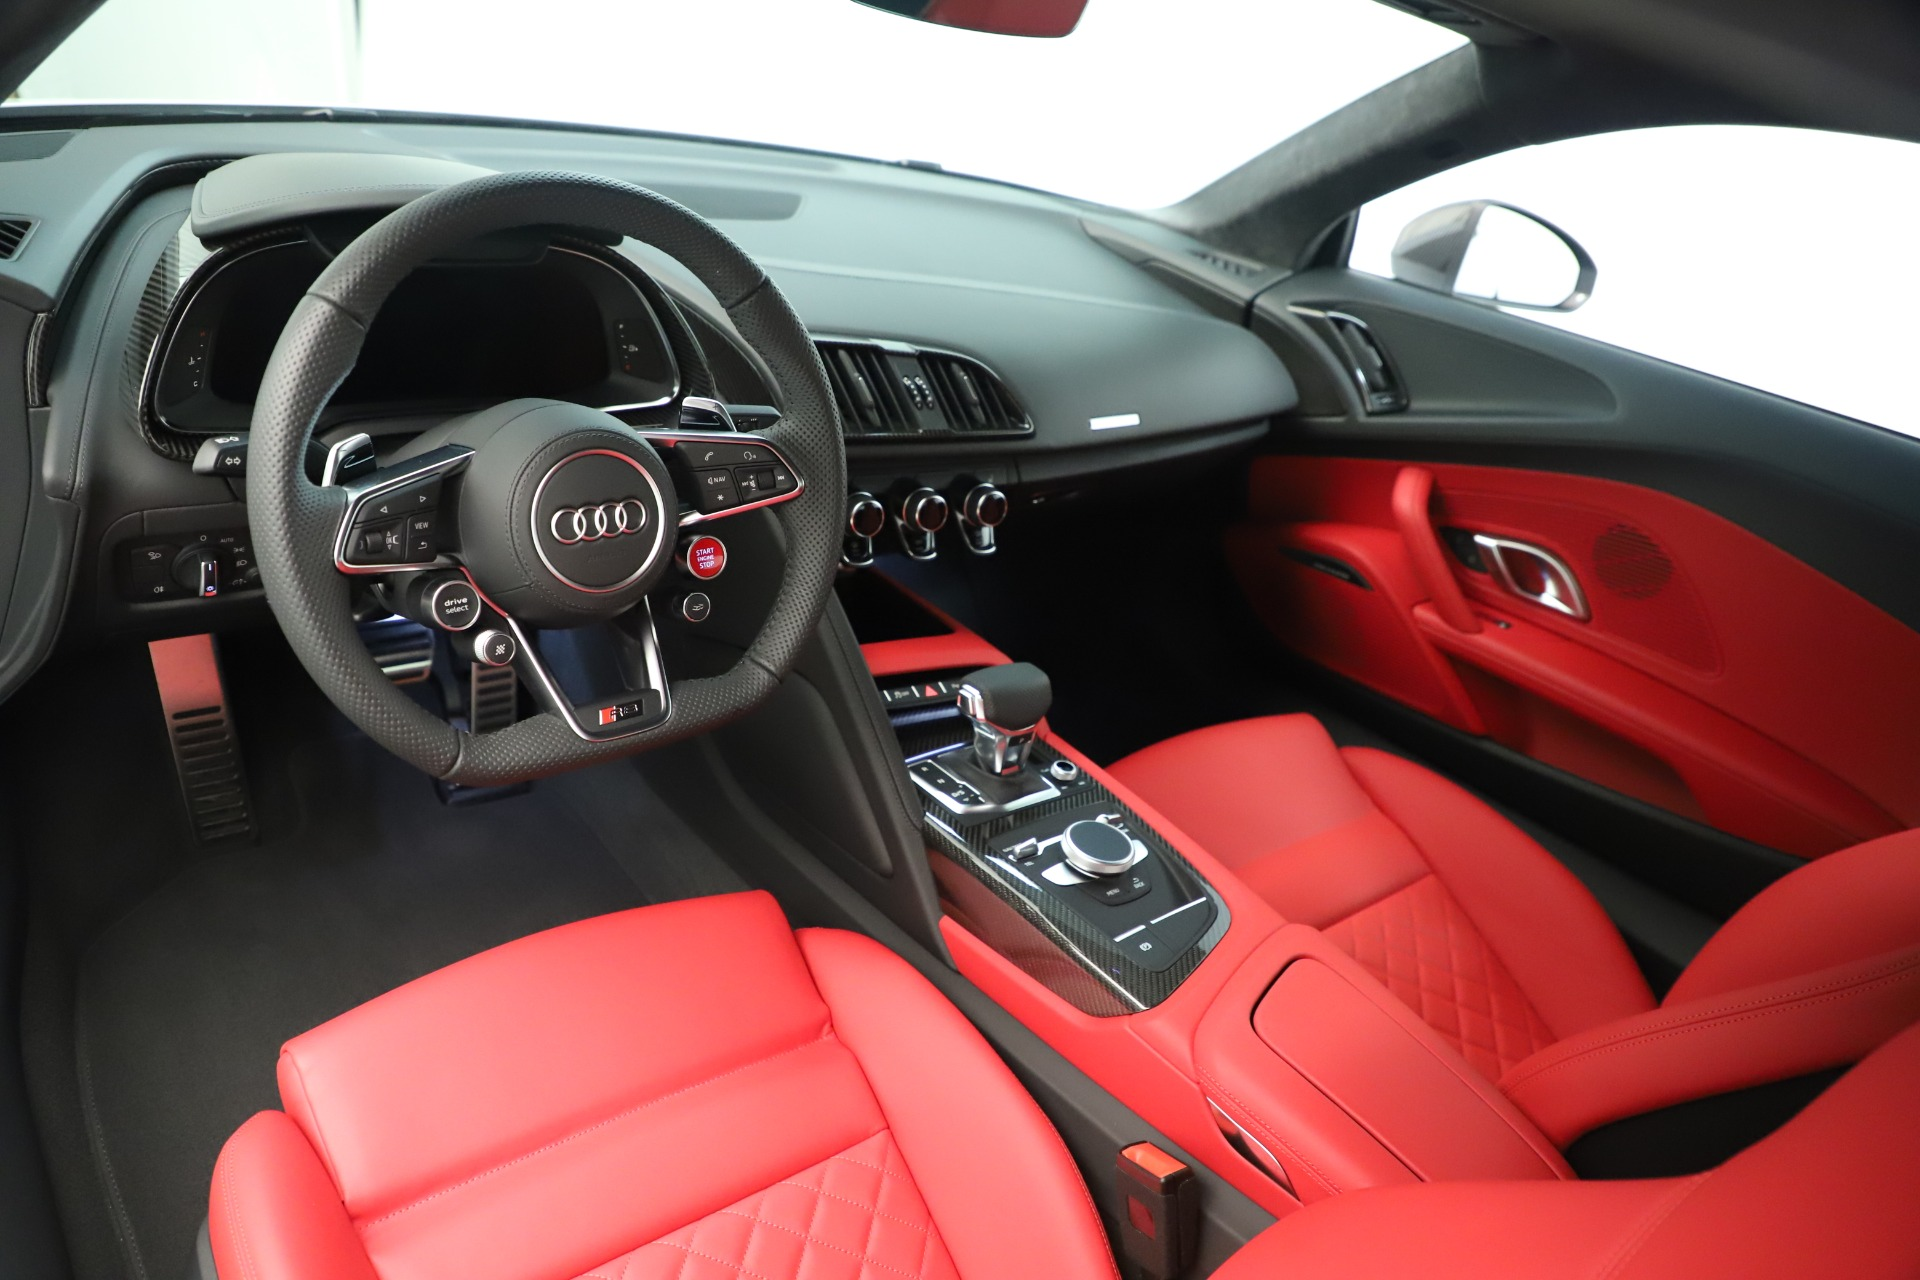 Used 2018 Audi R8 5.2 quattro V10 Plus For Sale In Westport, CT 3360_p14